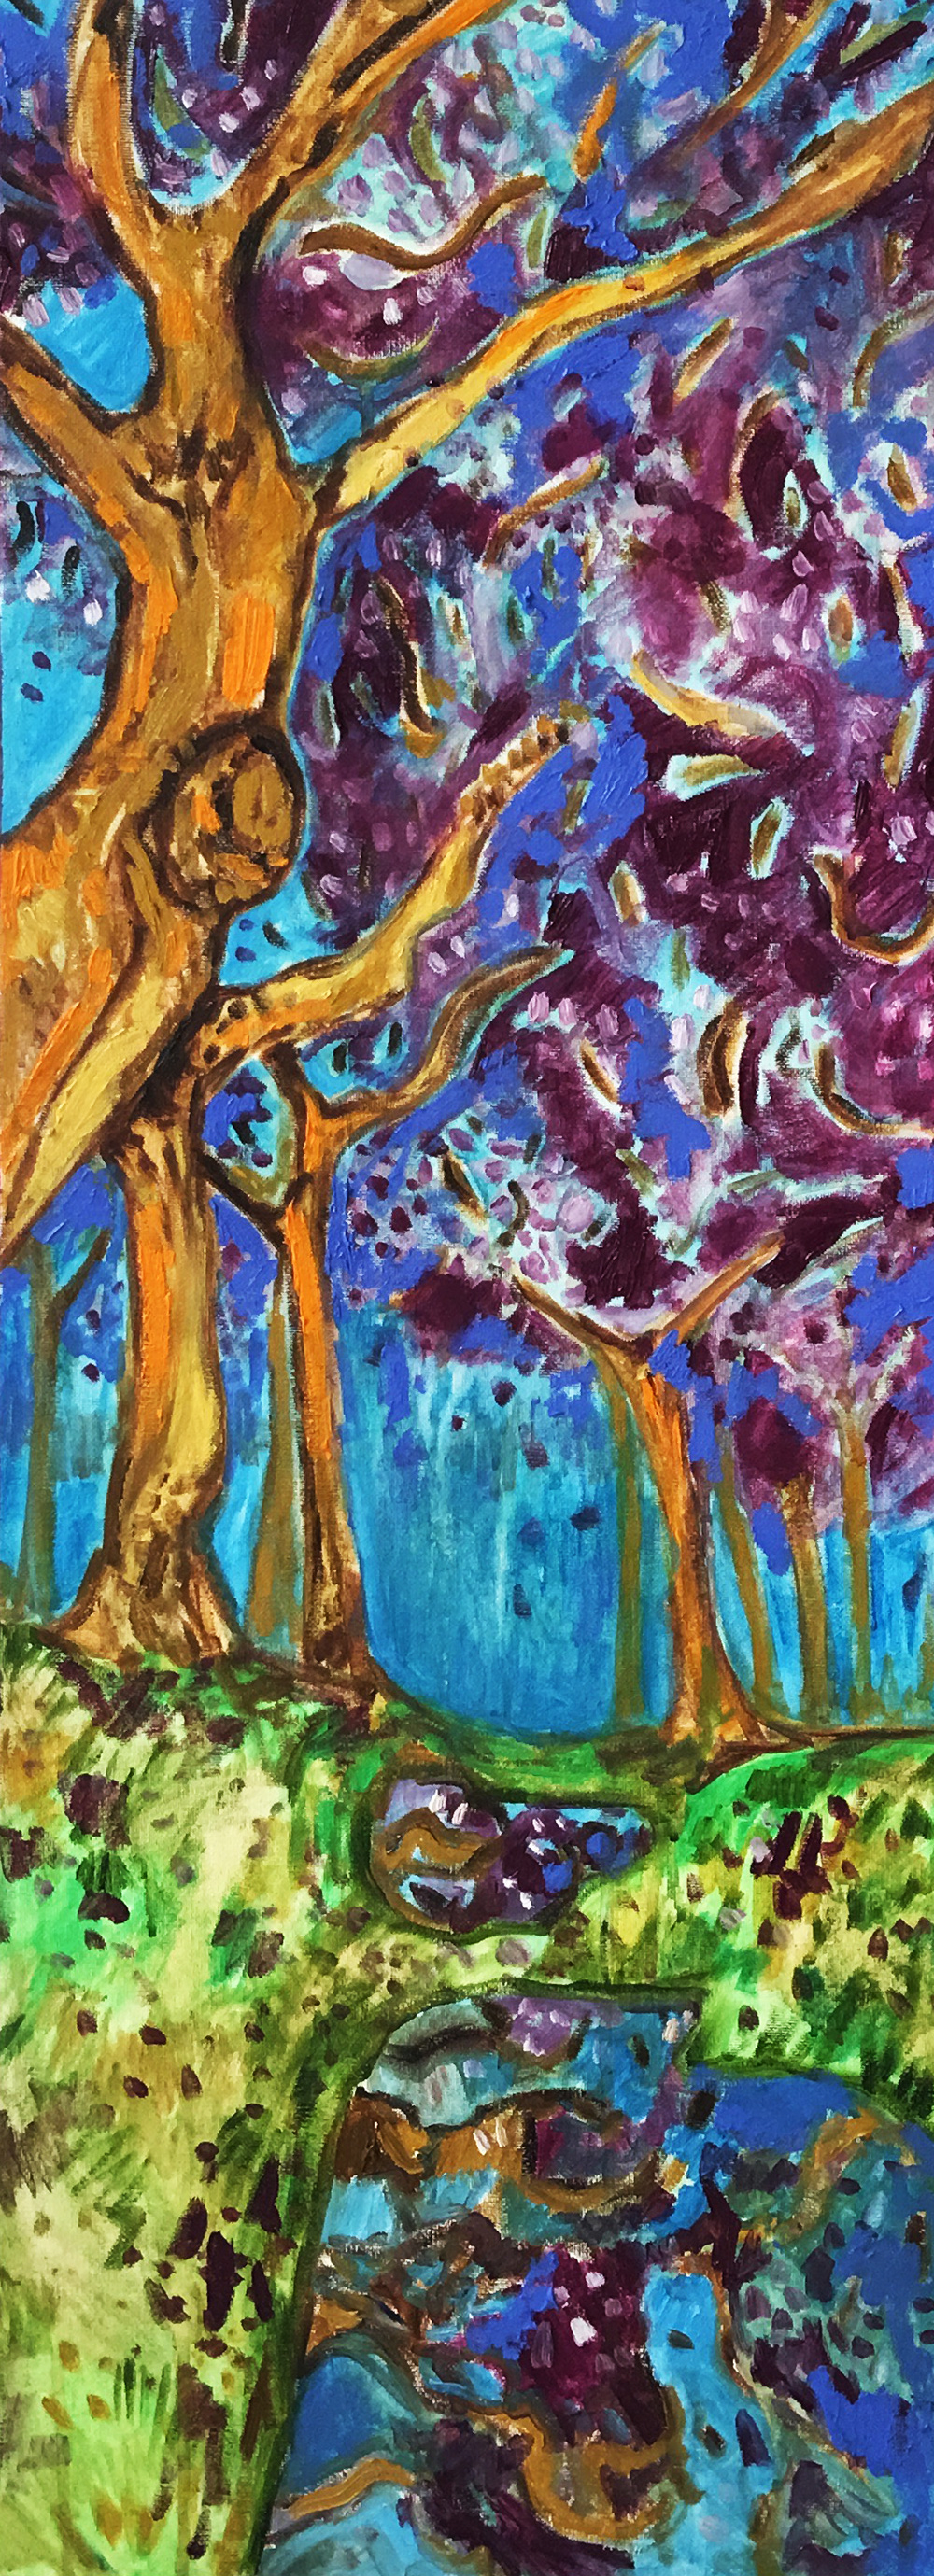 5. Jacarandas in Bloom   2  016 (30 x 80 cm)